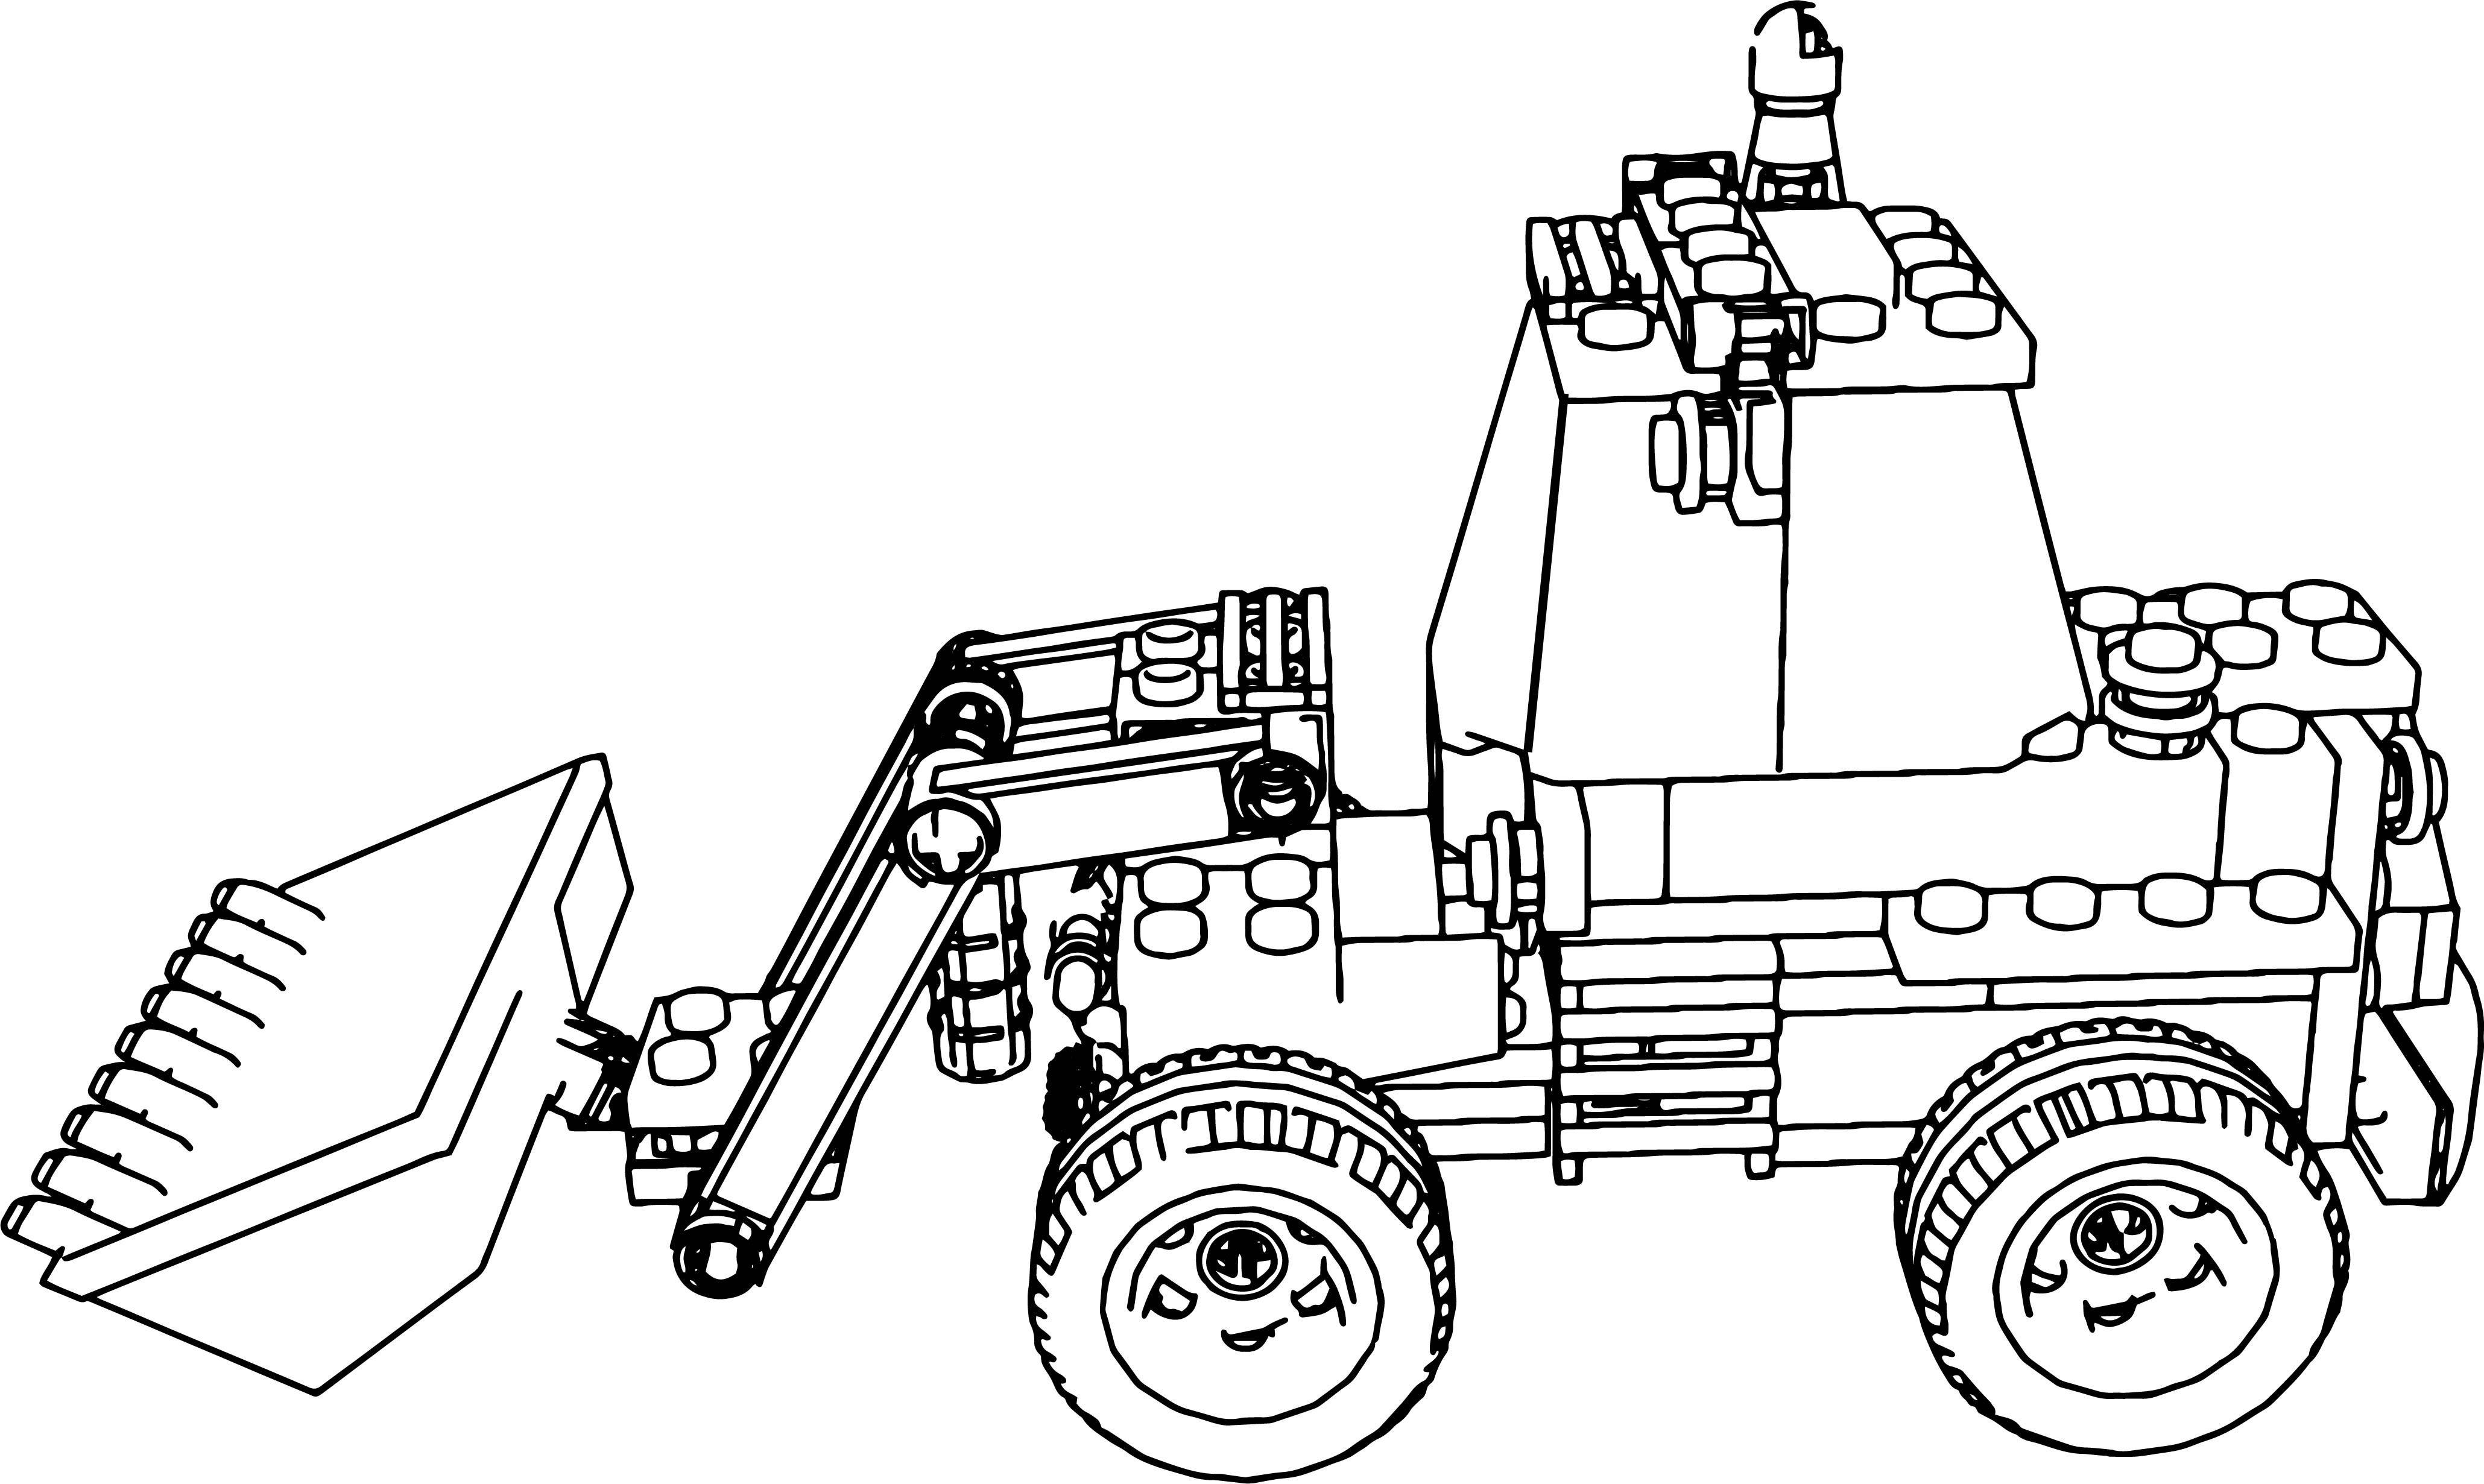 lego fire truck coloring print download educational fire truck coloring pages fire lego truck coloring